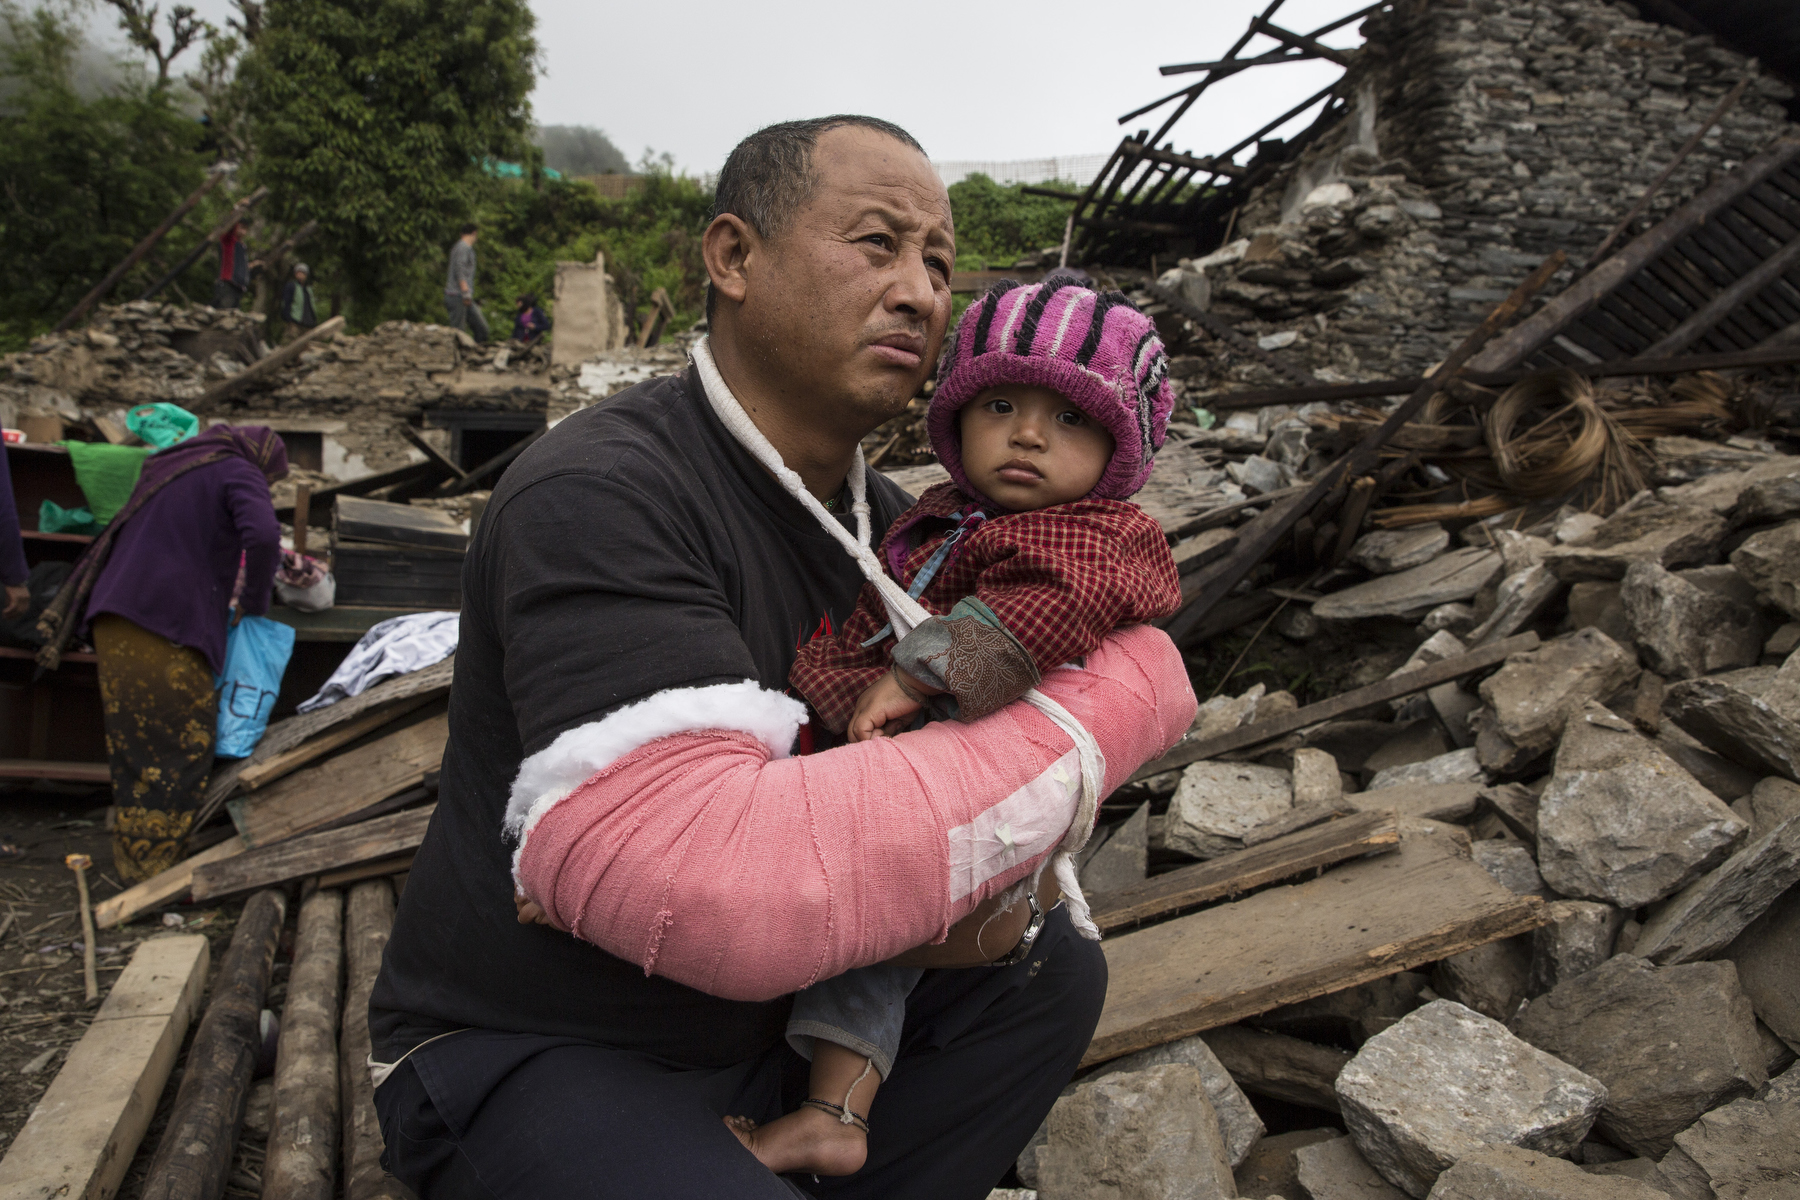 BARPAK, NEPAL -MAY 1, 2015:. Khem Ghale holds his son Milan,10 months who he rescued from his house as it collapsed. In Barpak where 60% of the village has been destroyed. The village is amongst the largest in Gorkha province with a population of around 10-12,000. Around 57-60 died. So far almost 6,000 people have died in Nepal\'s worst earthquake in 80 years.  (Photo by Paula Bronstein/ for the Wall Street Journal)